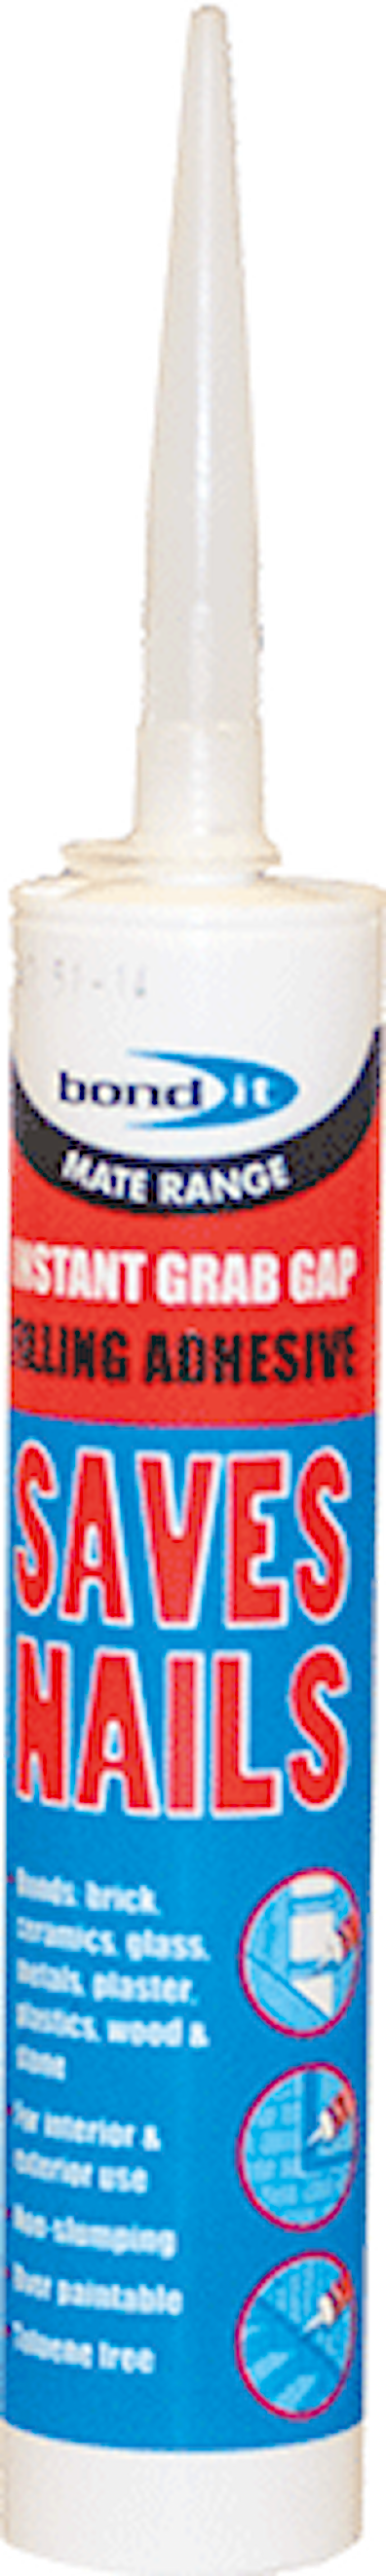 Instant Grab Saves Nails Adhesive